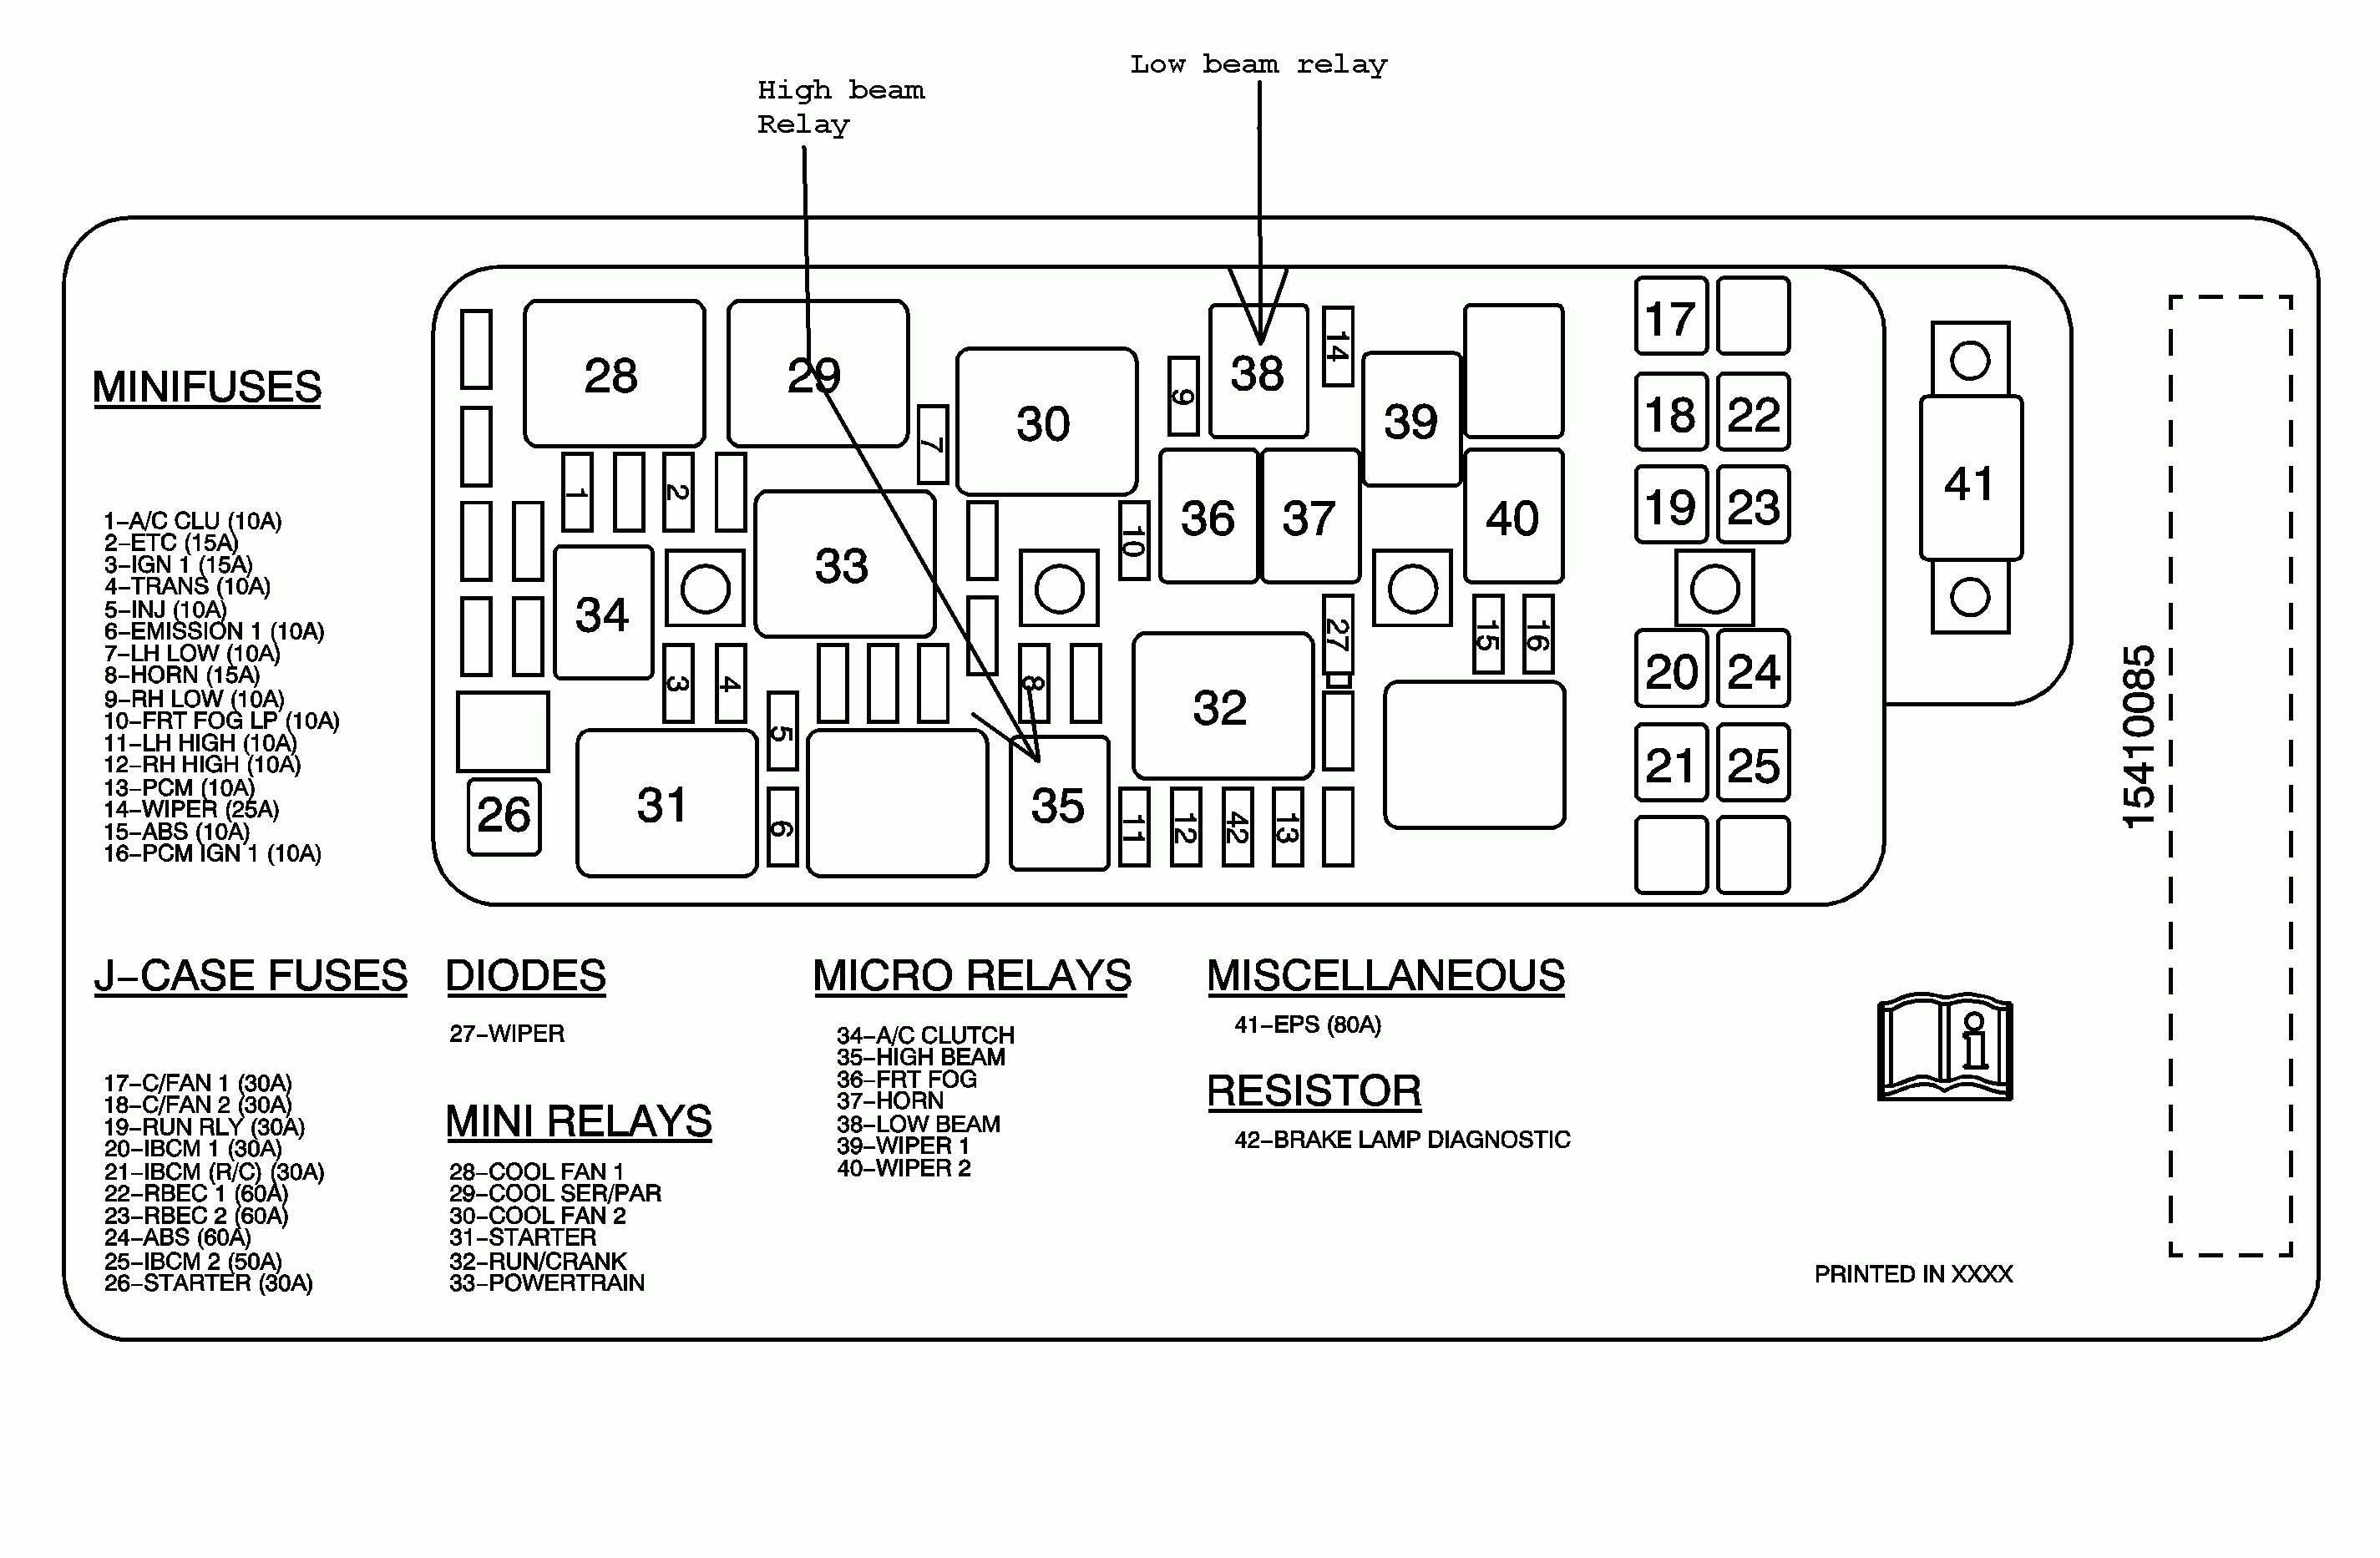 [DIAGRAM] 2004 Chevy Venture Radio Wiring Diagram FULL